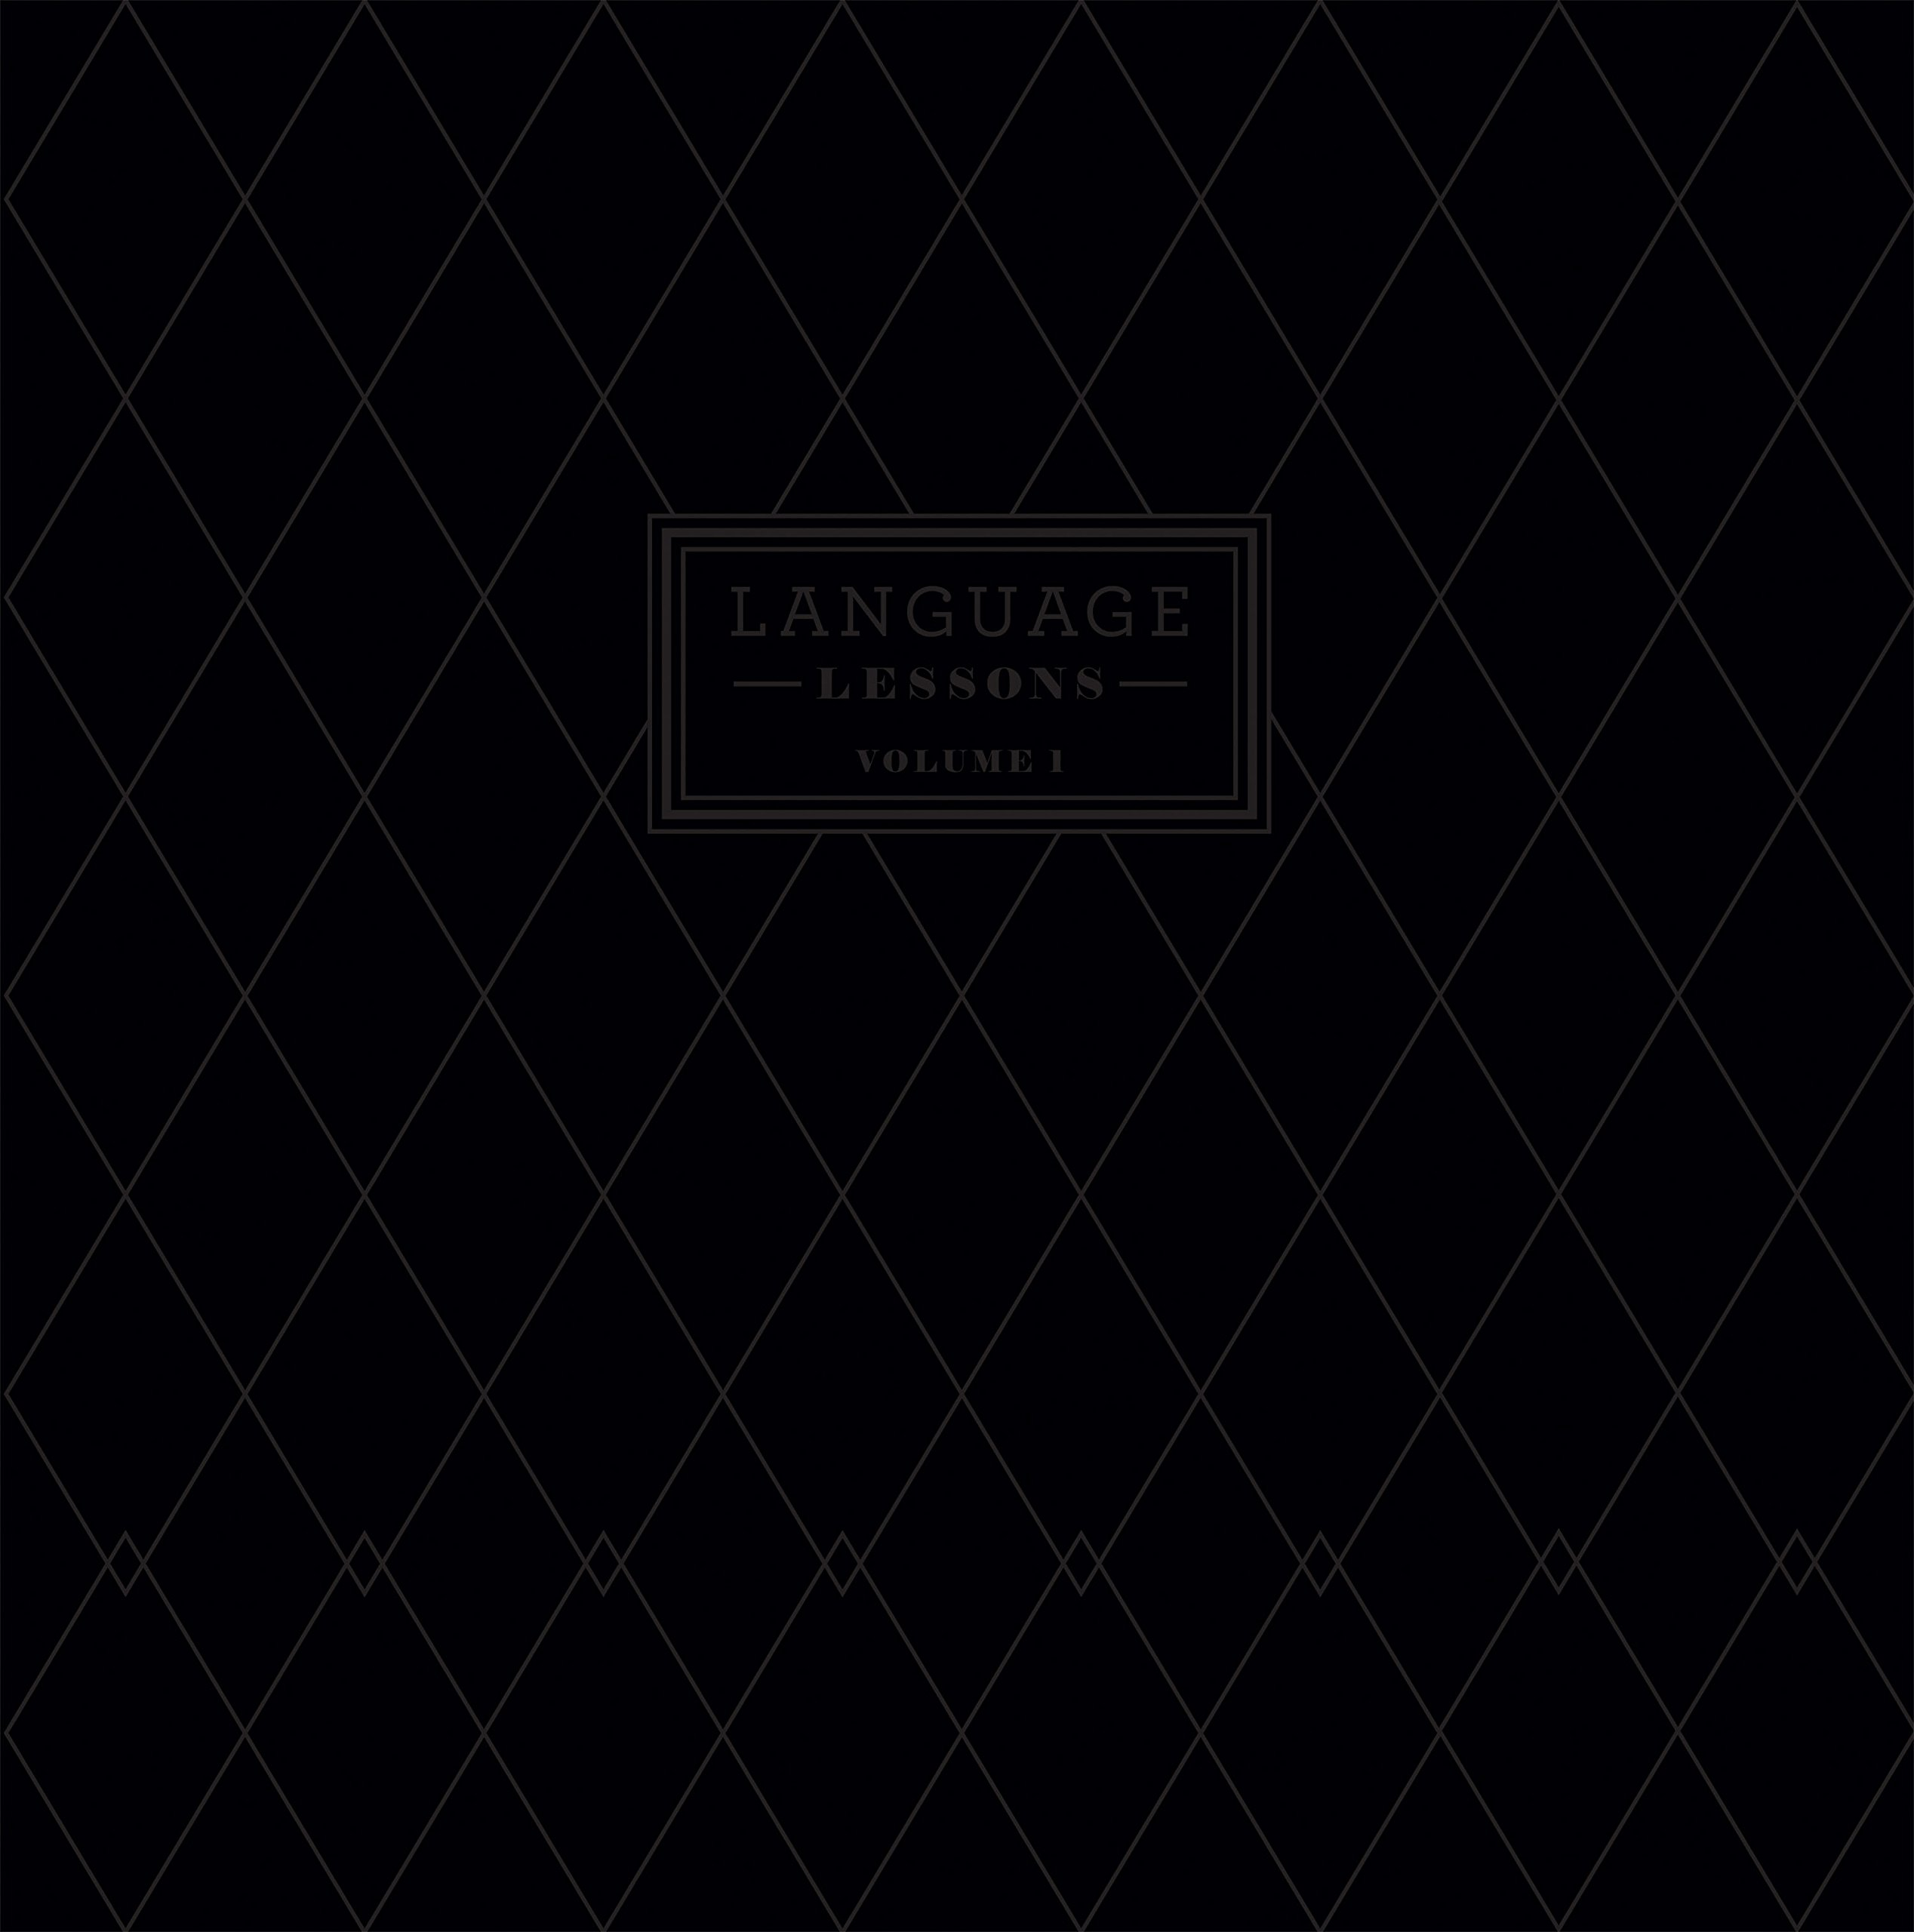 Language Lessons: Volume I by Third Man Books